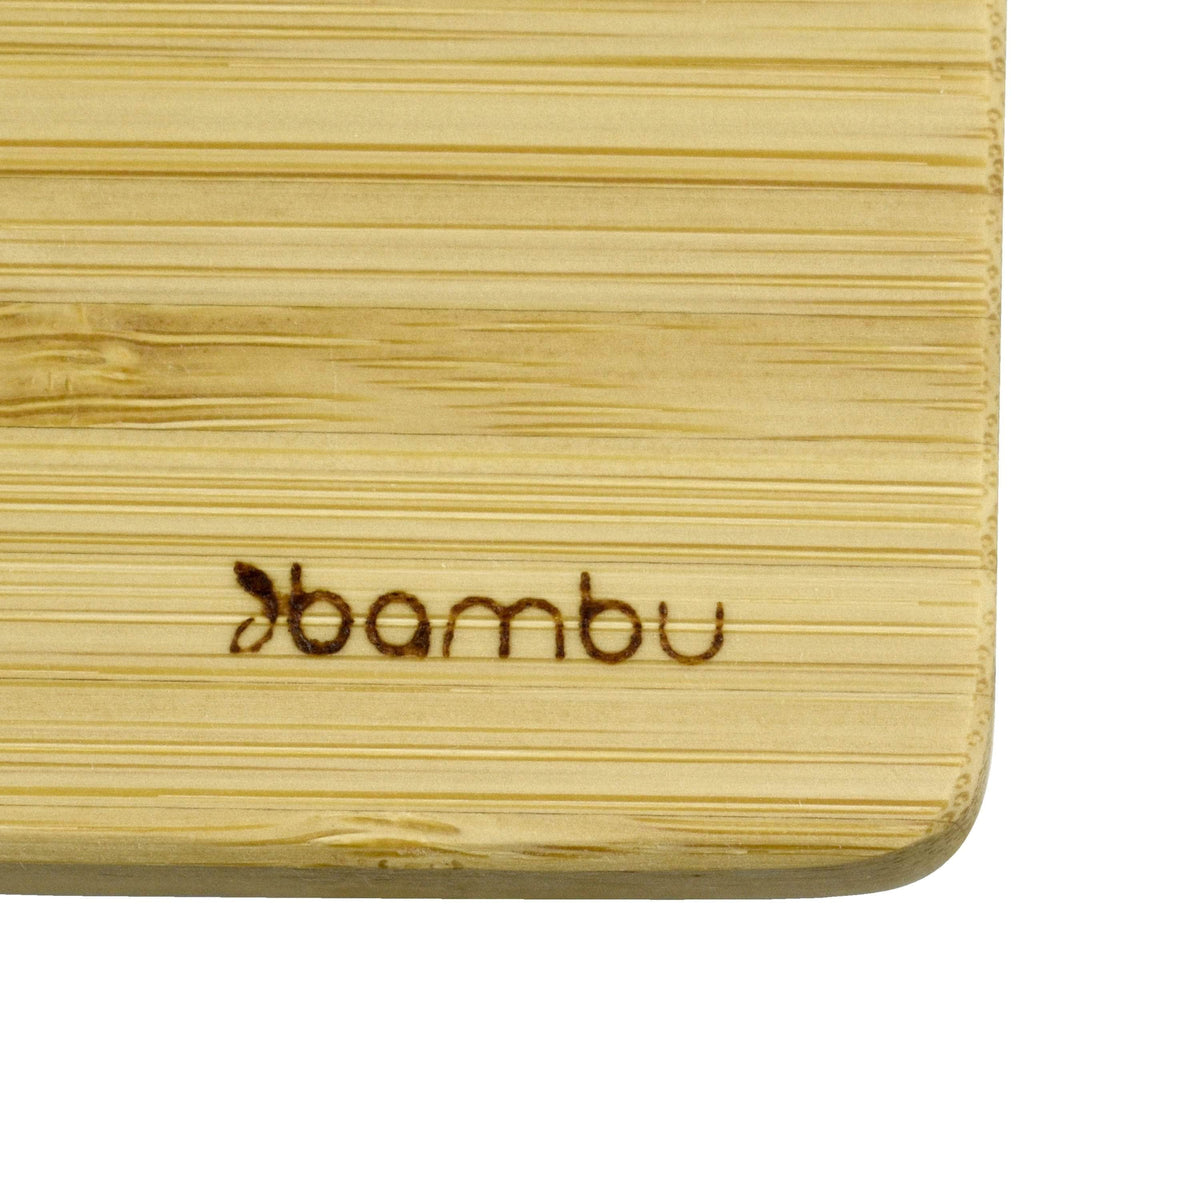 *NEW* Bamboo undercut cutting & serving boards